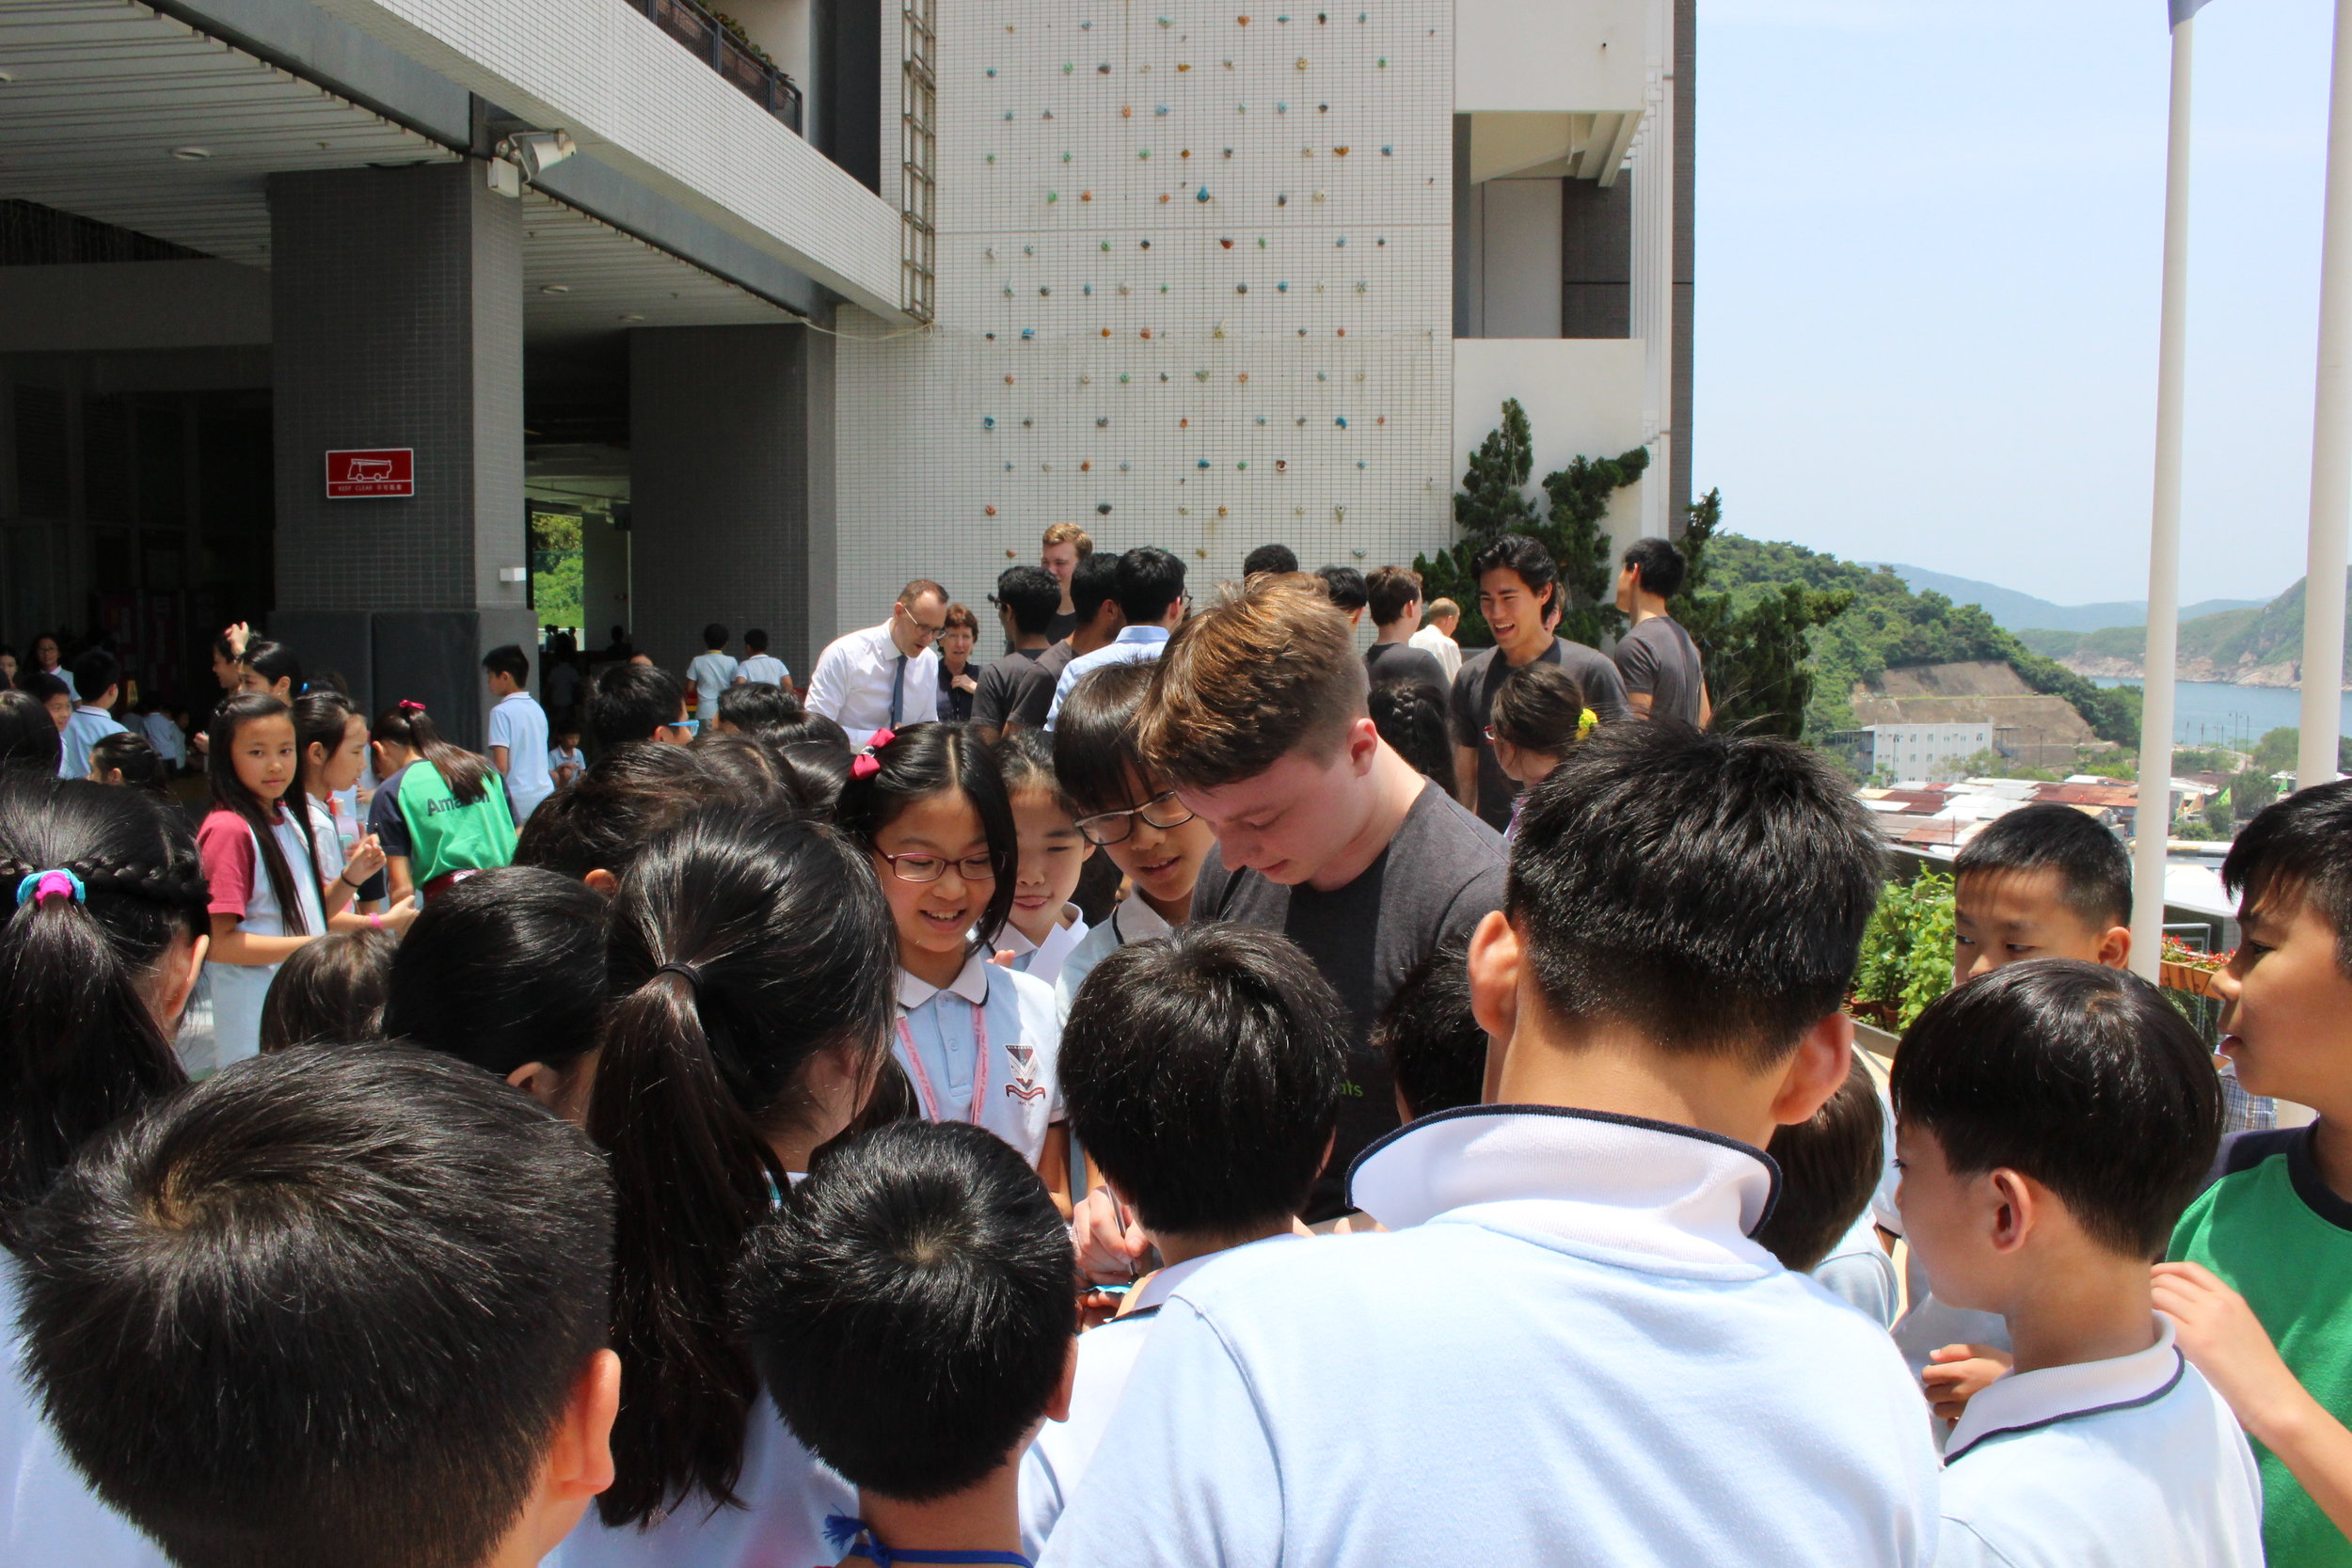 Shaun ('20) signing autographs with students after the concert